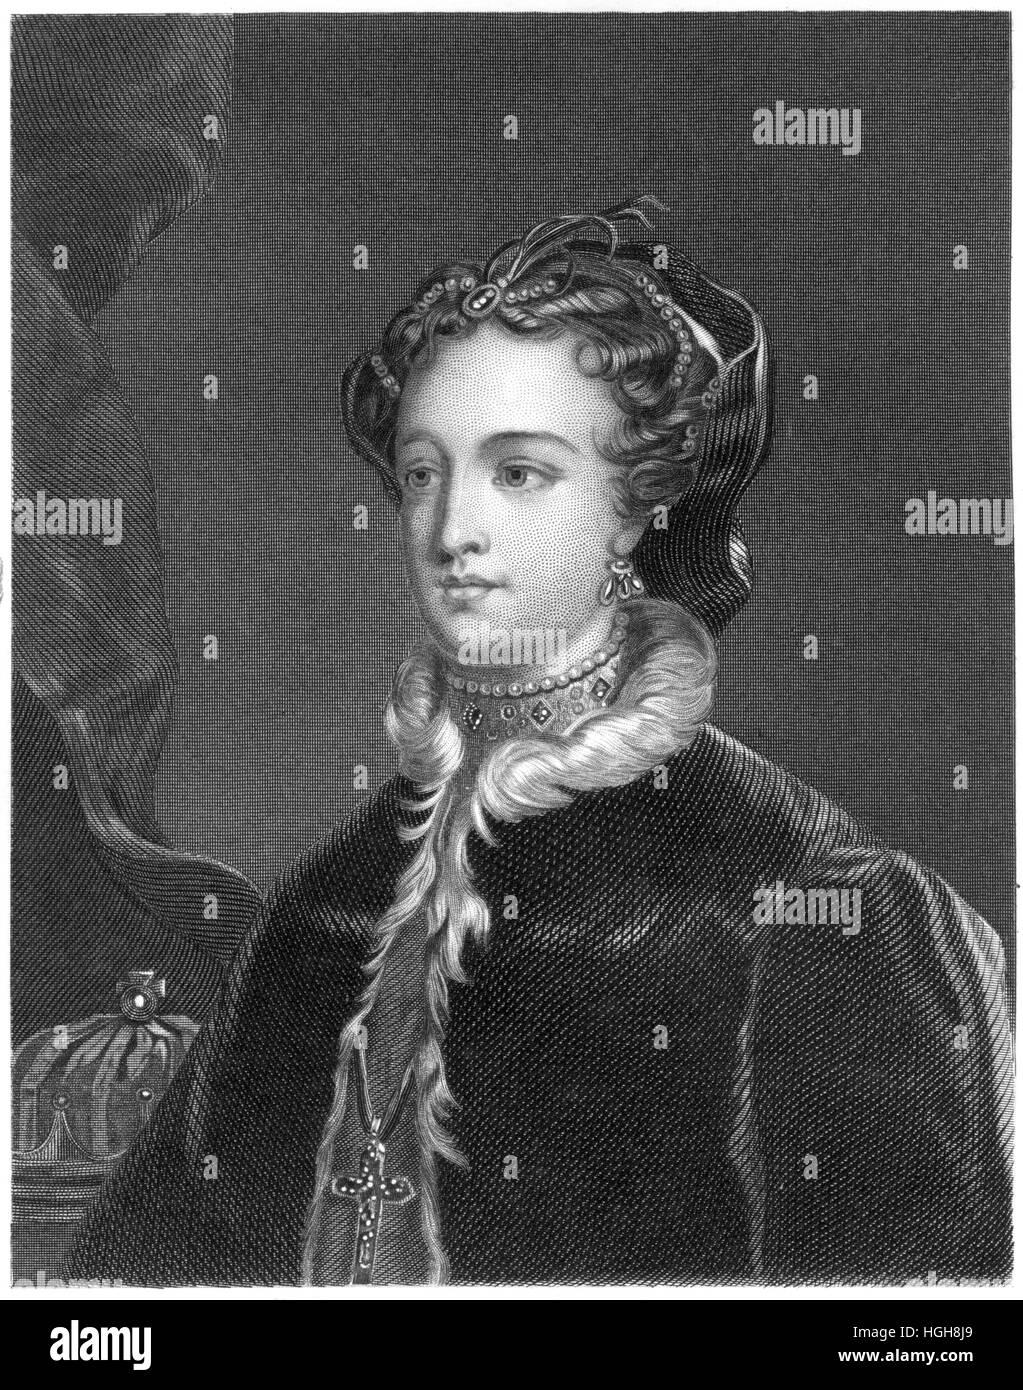 An engraving of Mary Stuart scanned at high resolution from a book printed in 1859. Believed copyright free. Stock Photo